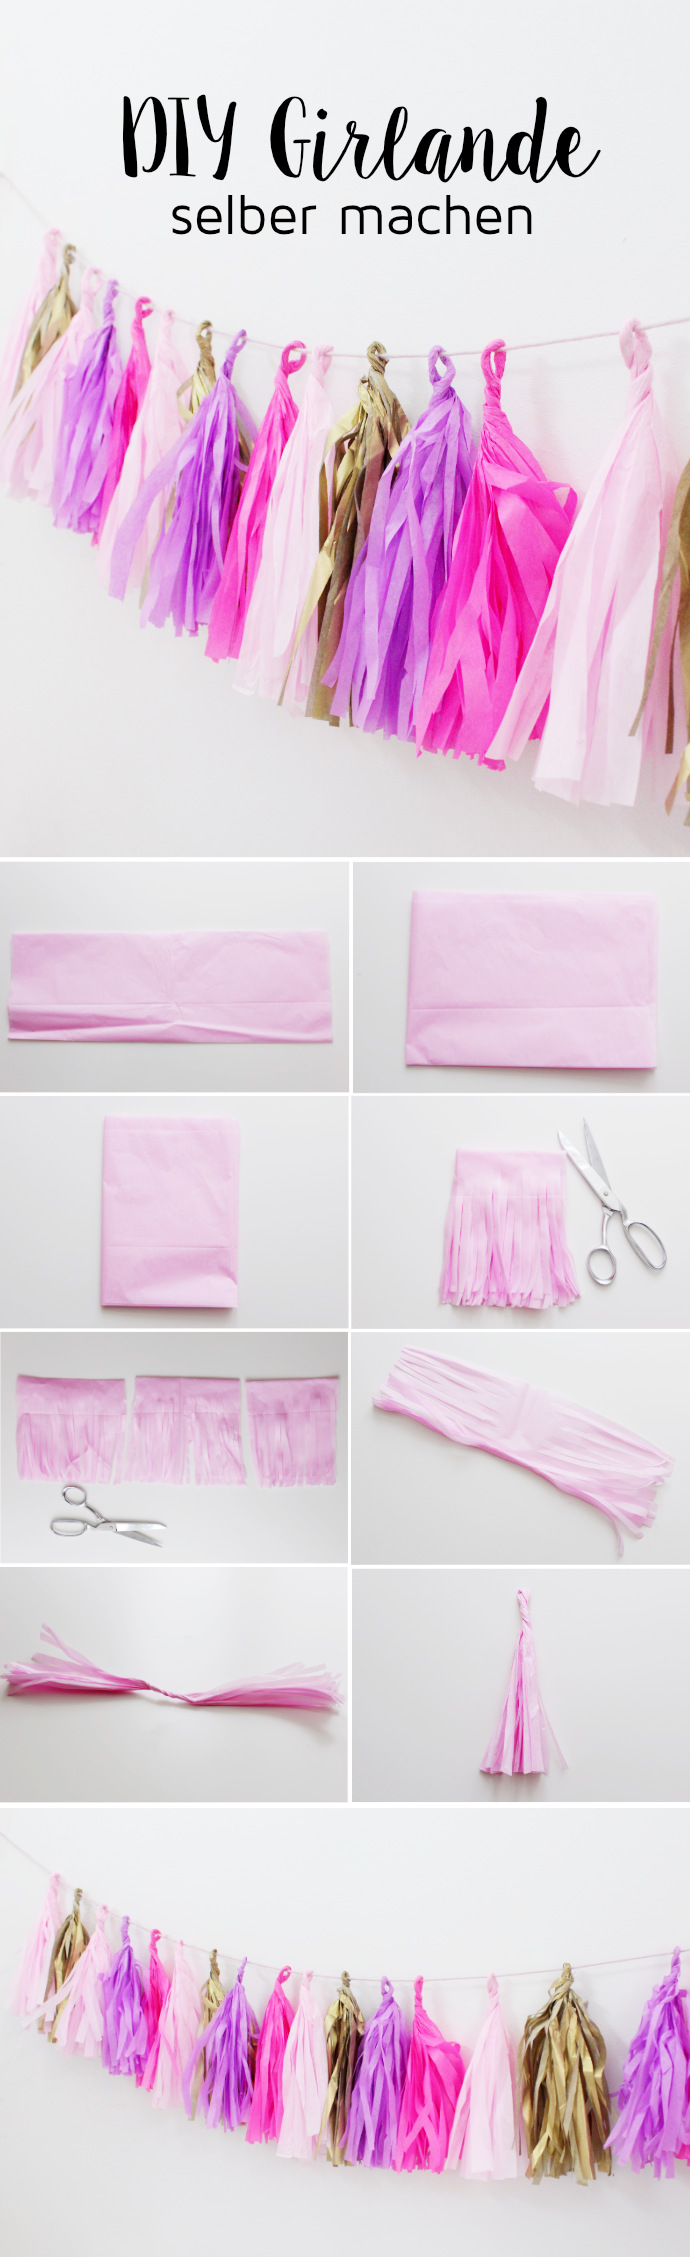 DIY-Girlande-aus-Seidenpapier-Tassels-Quasten-selber-machen-Party-Deko-DIY-Blog